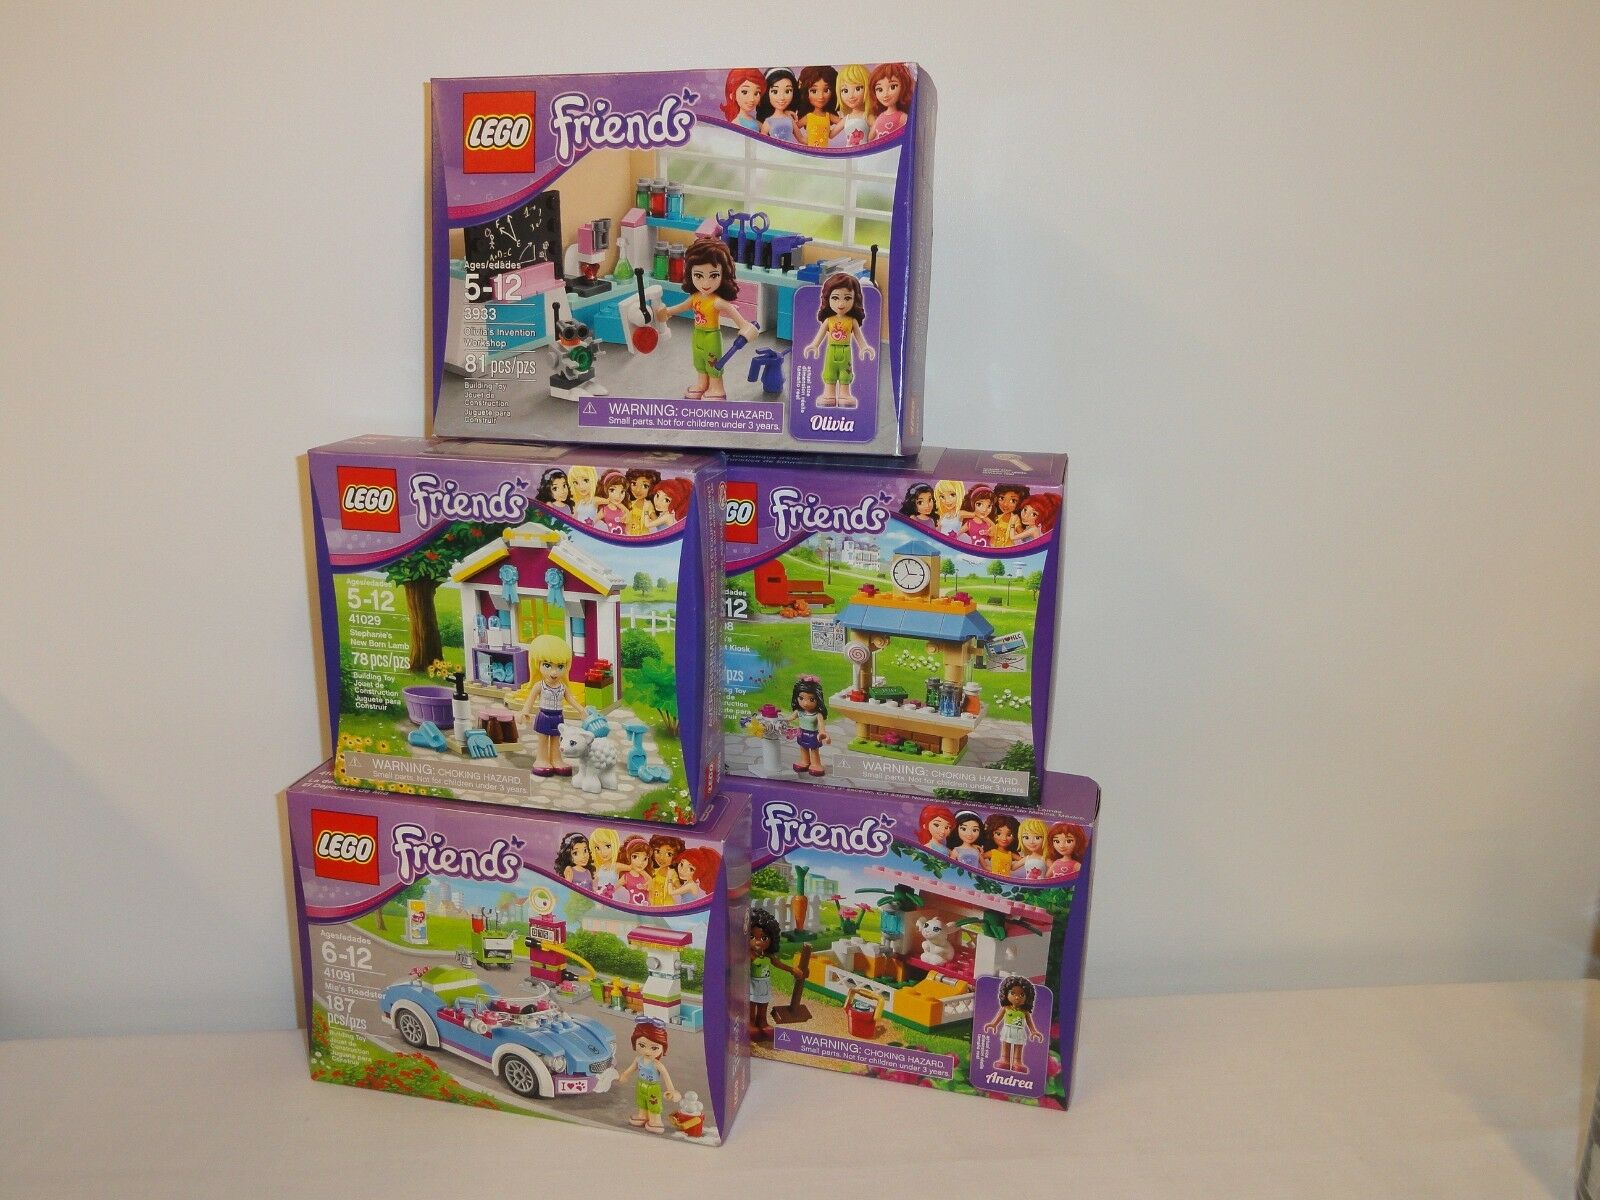 NEW LEGO Friends 41091 41029 41098 3938 3933 Roadster Lamb Bunny Box Sets